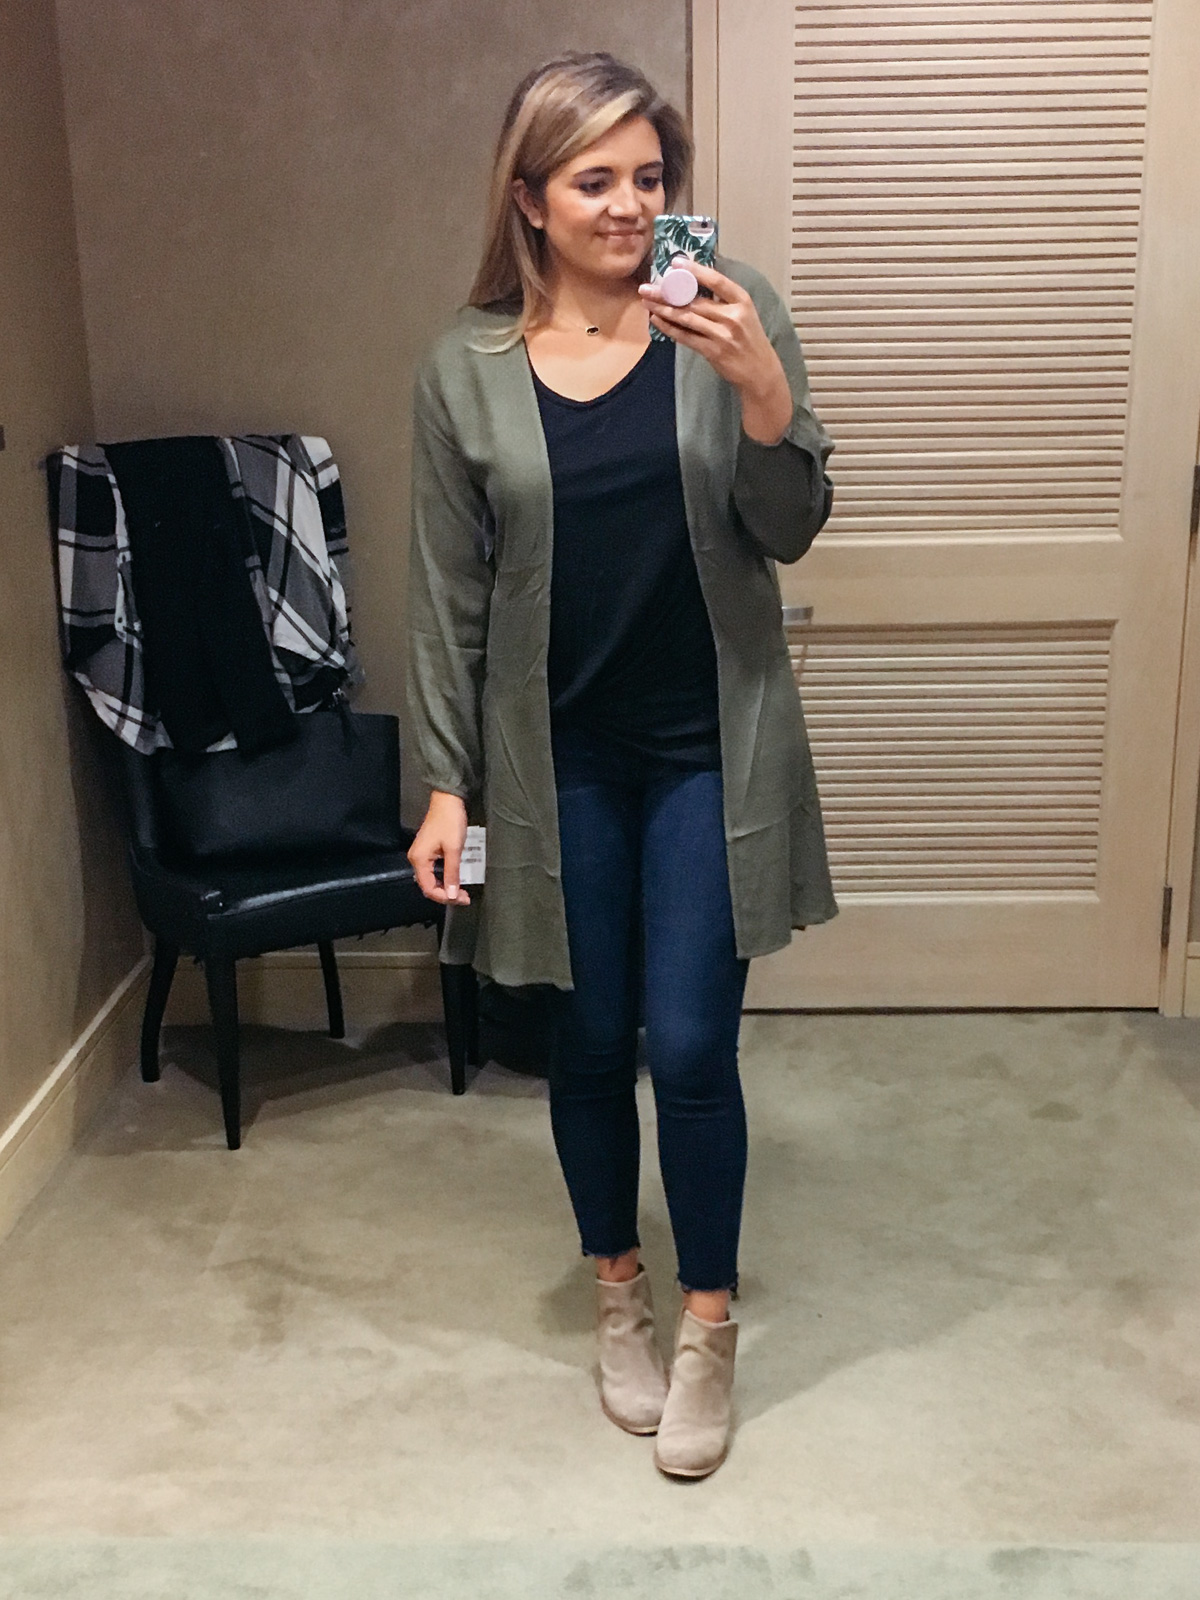 nordstrom dressing room diaries - olive jacket for fall | See the full dressing room review post at bylaurenm.com!